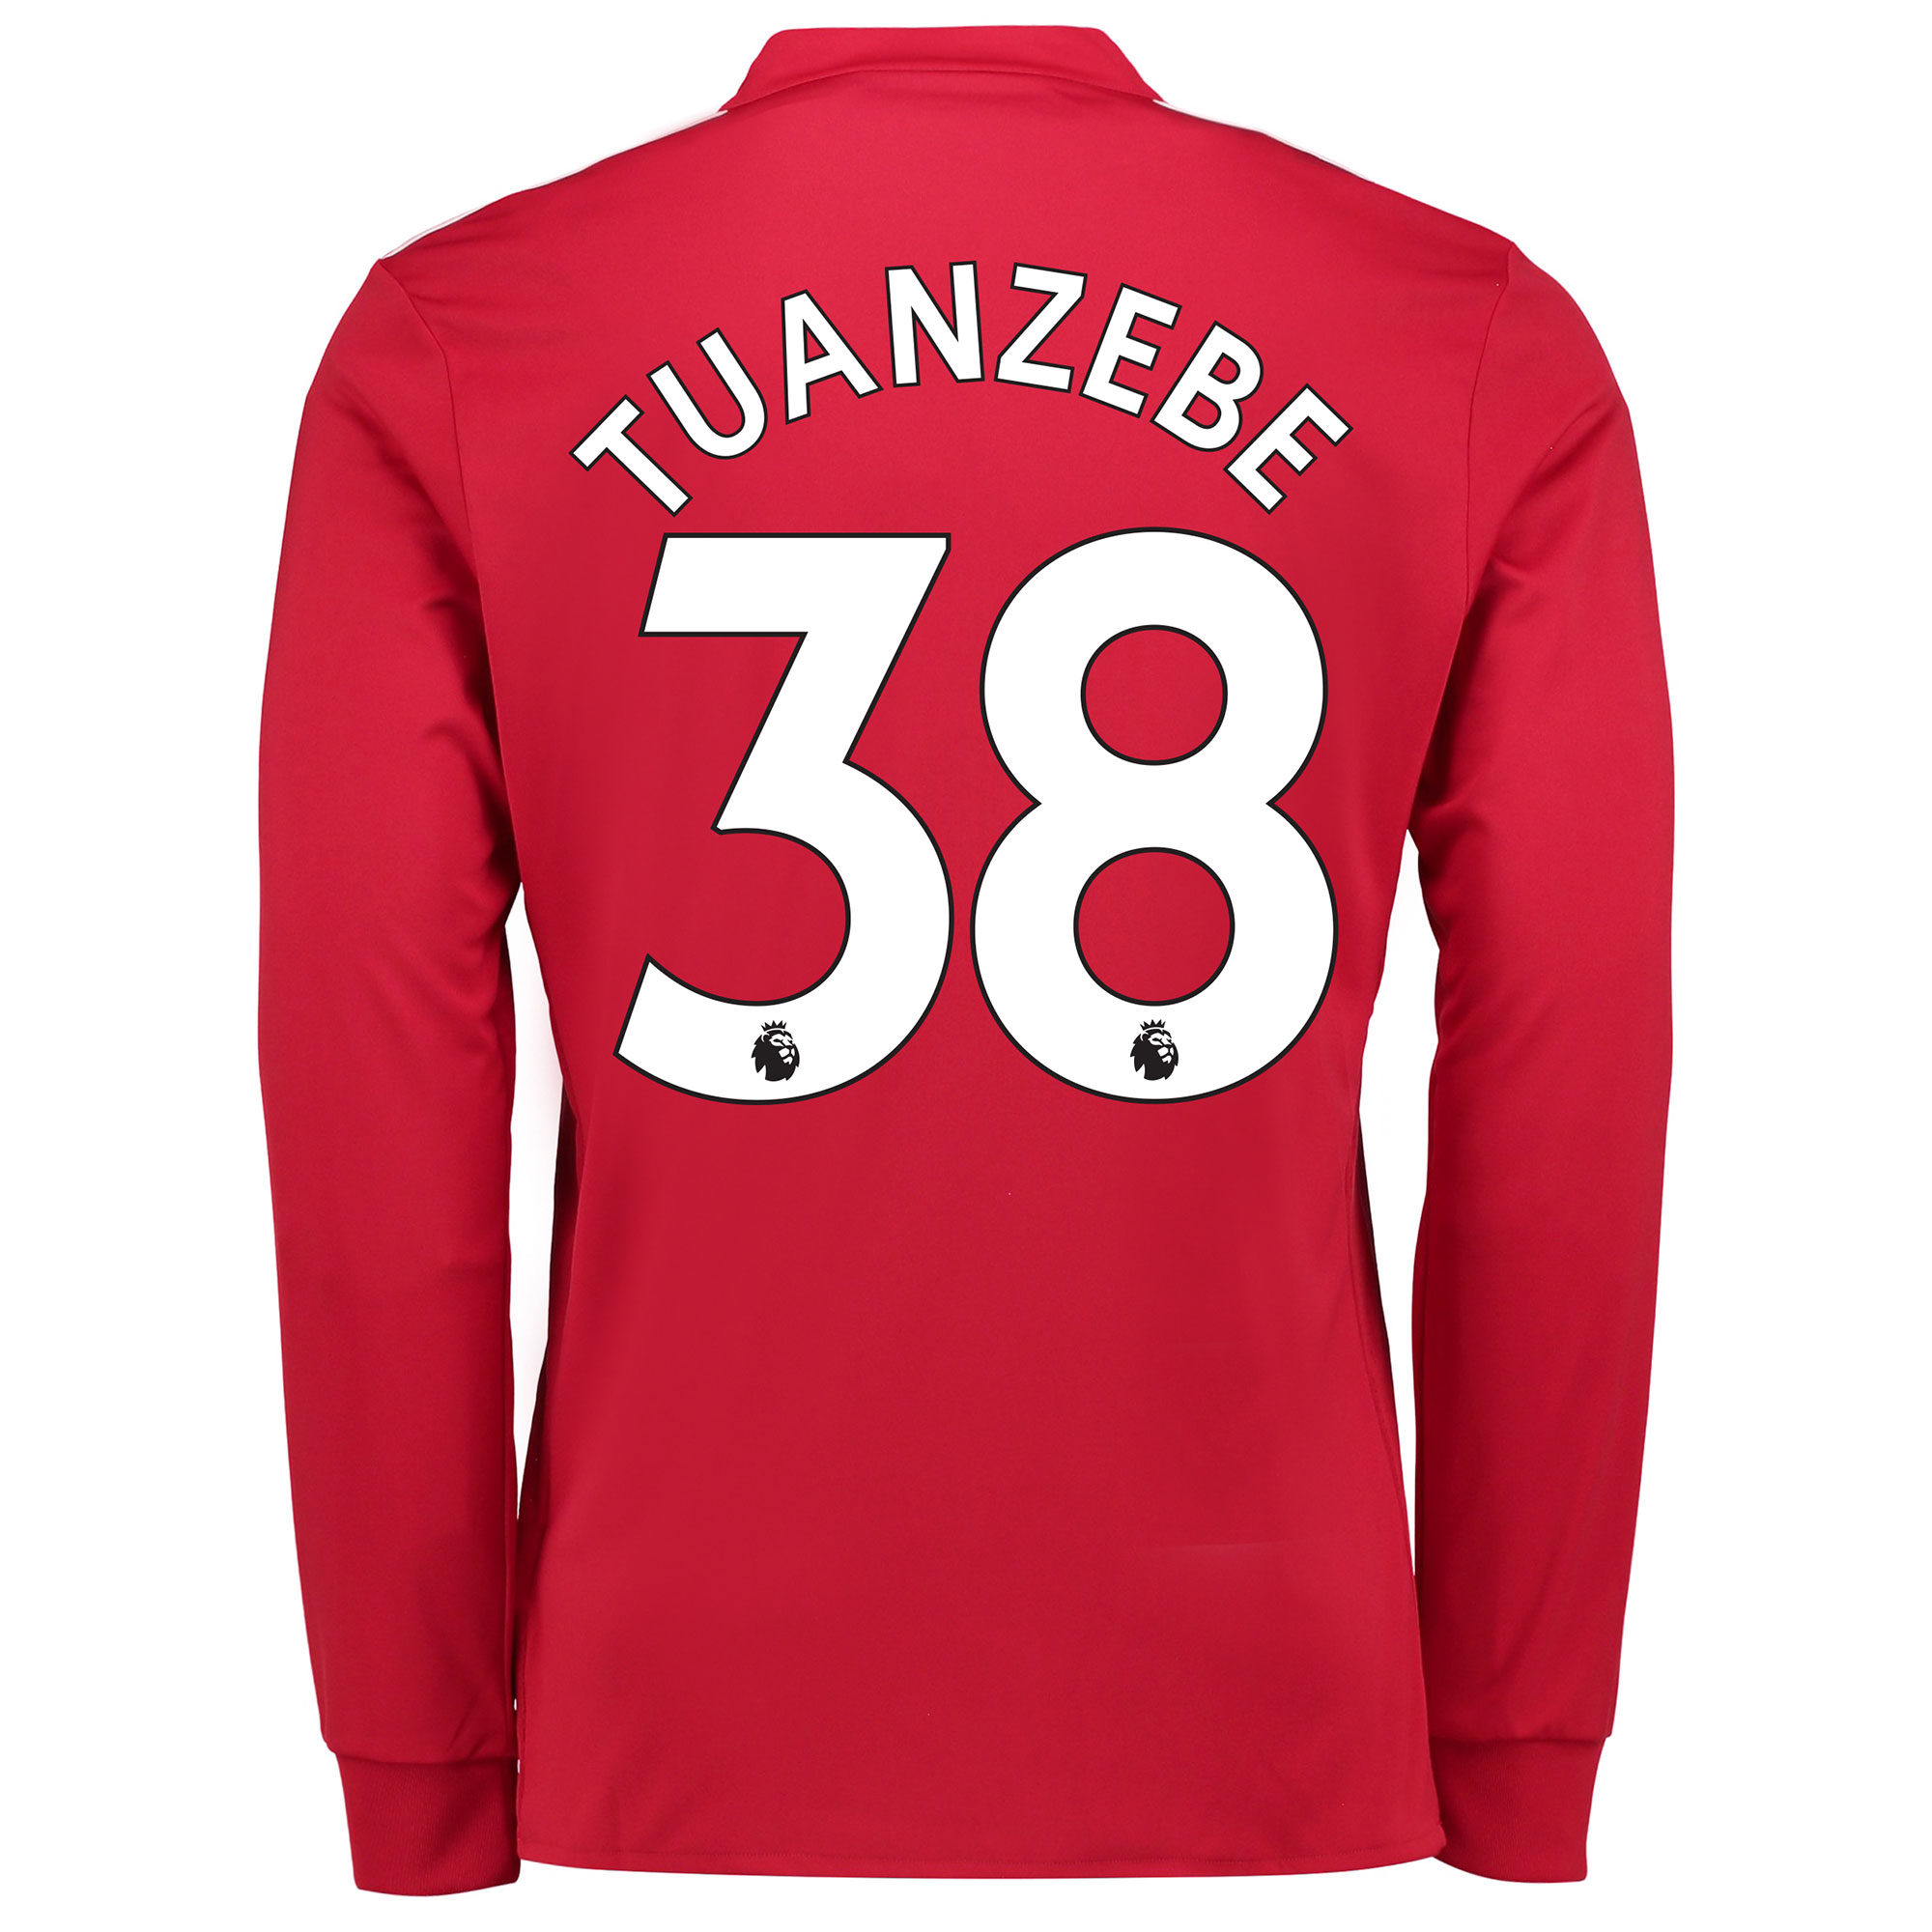 Manchester United Home Shirt 2017-18 - Long Sleeve with Tuanzebe 38 pr